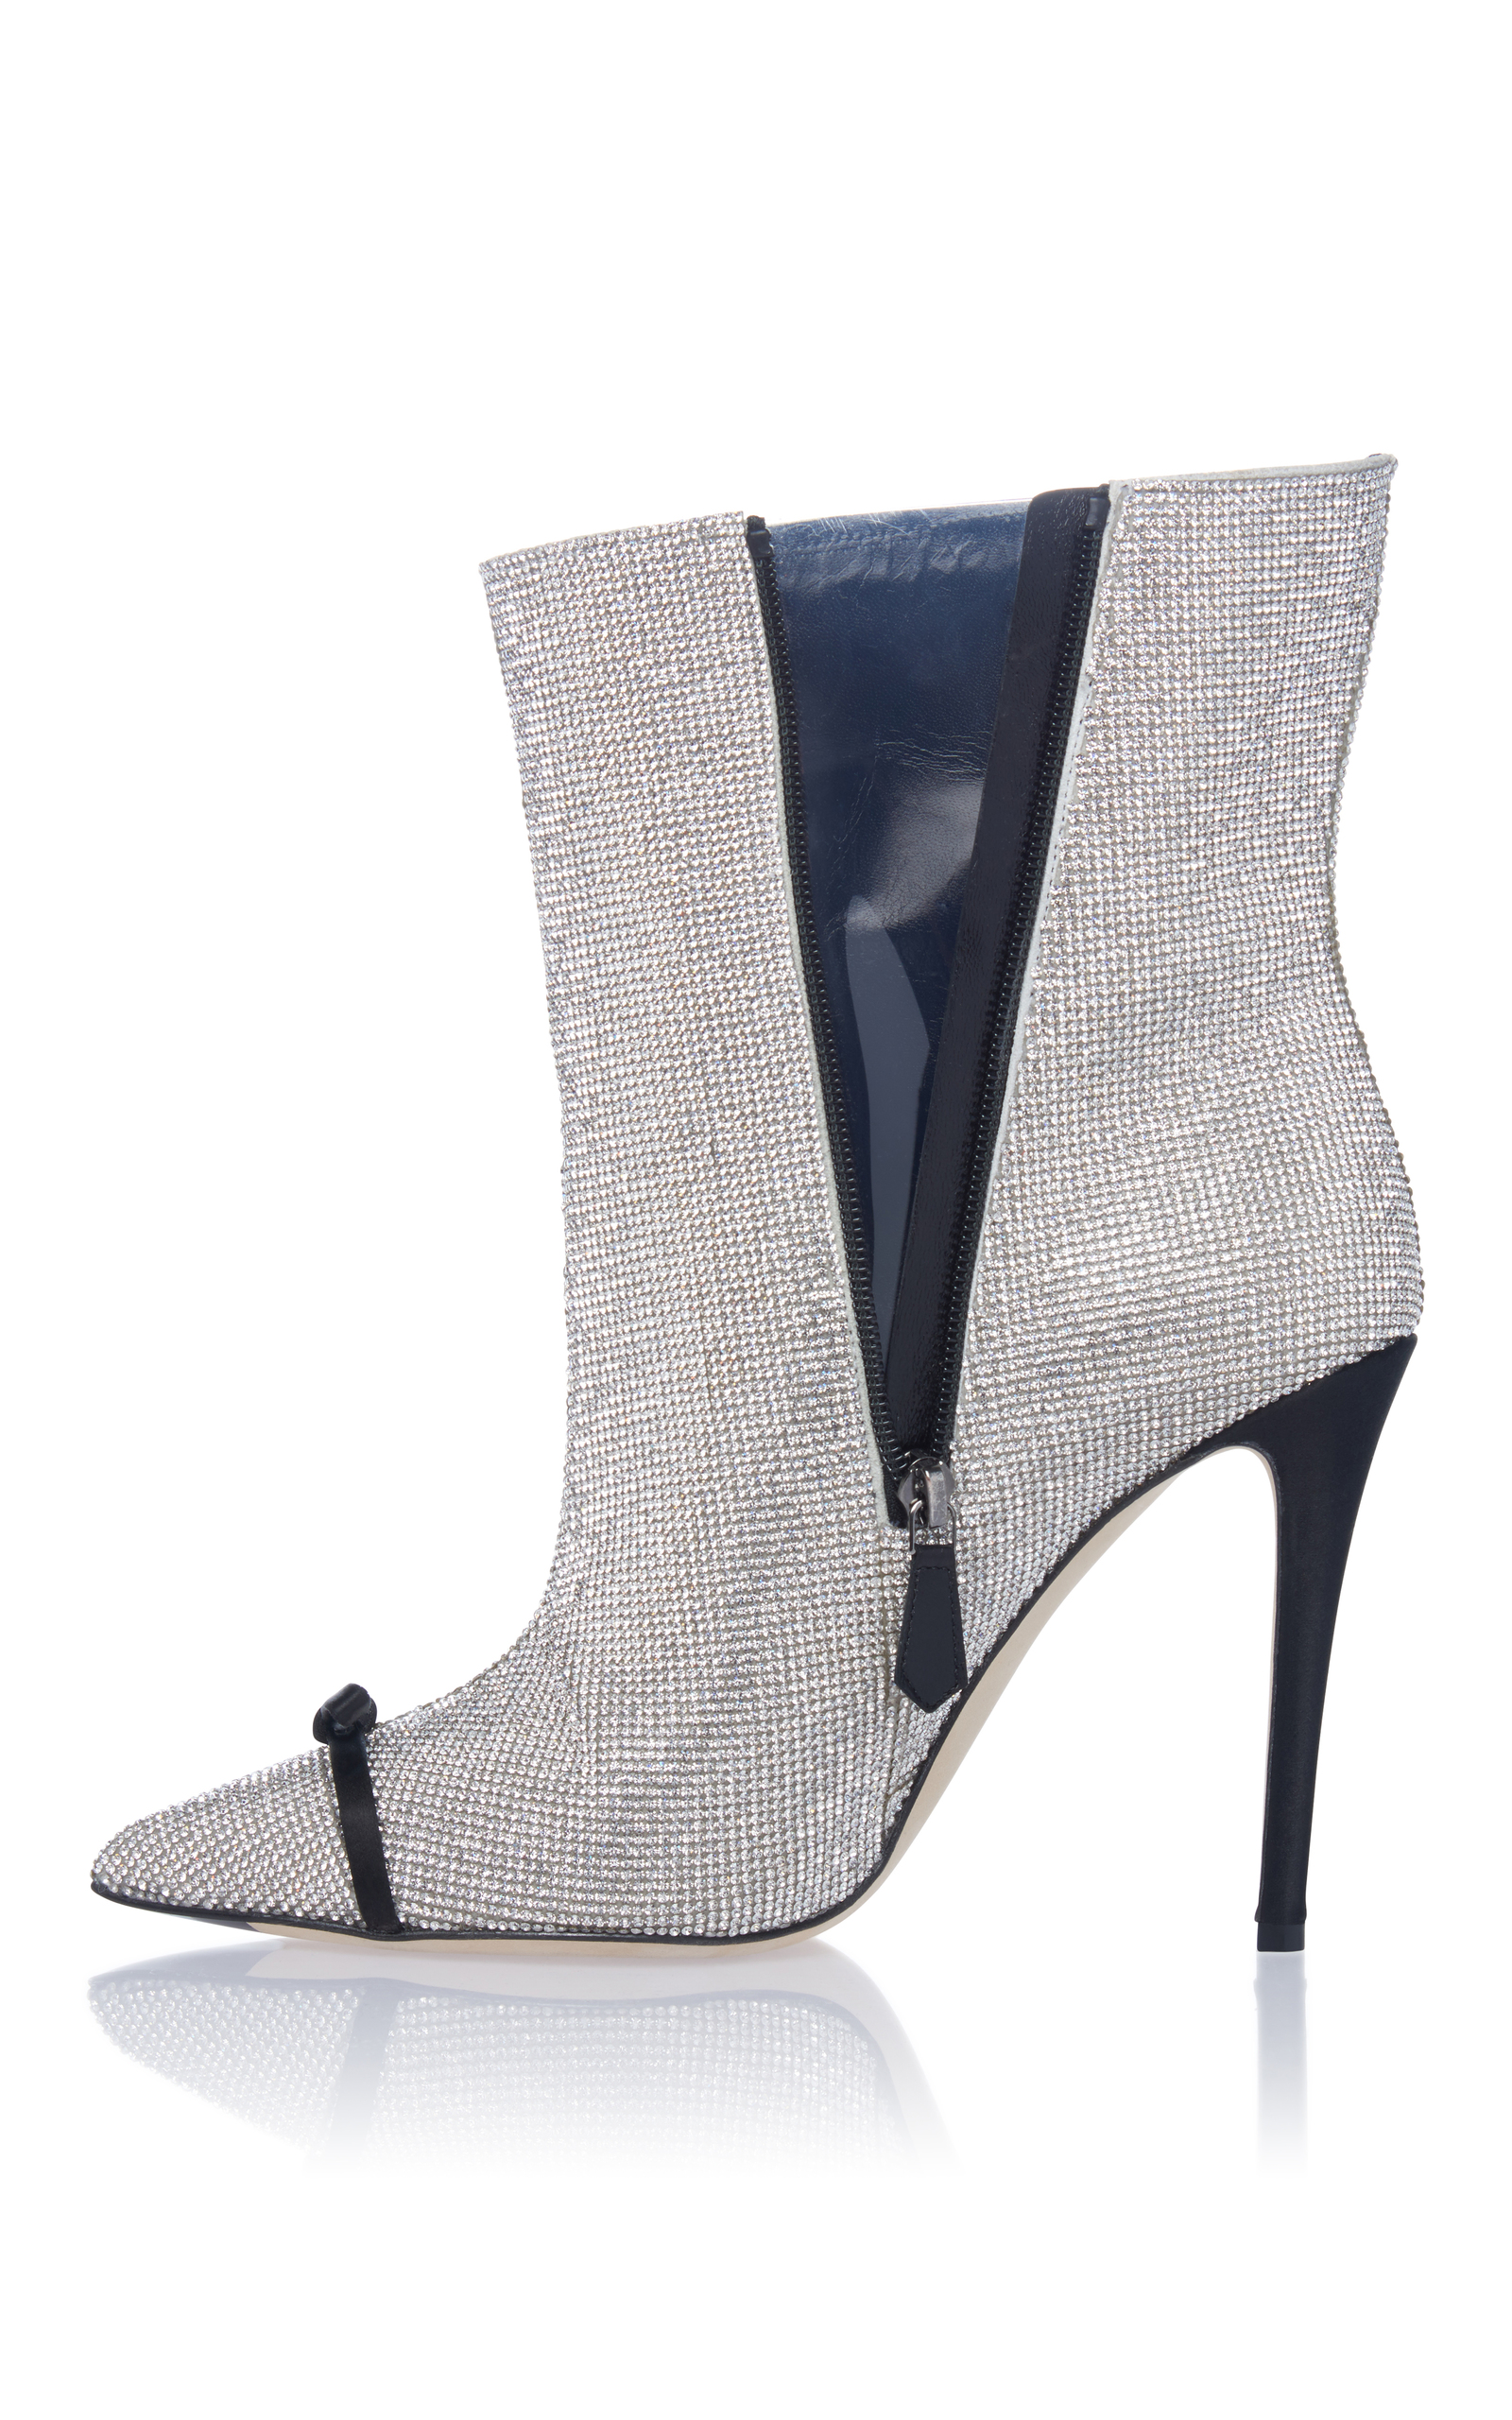 clearance amazing price Marco De Vincenzo bow detail boots ebay cheap price clearance low shipping discount latest HYc4q